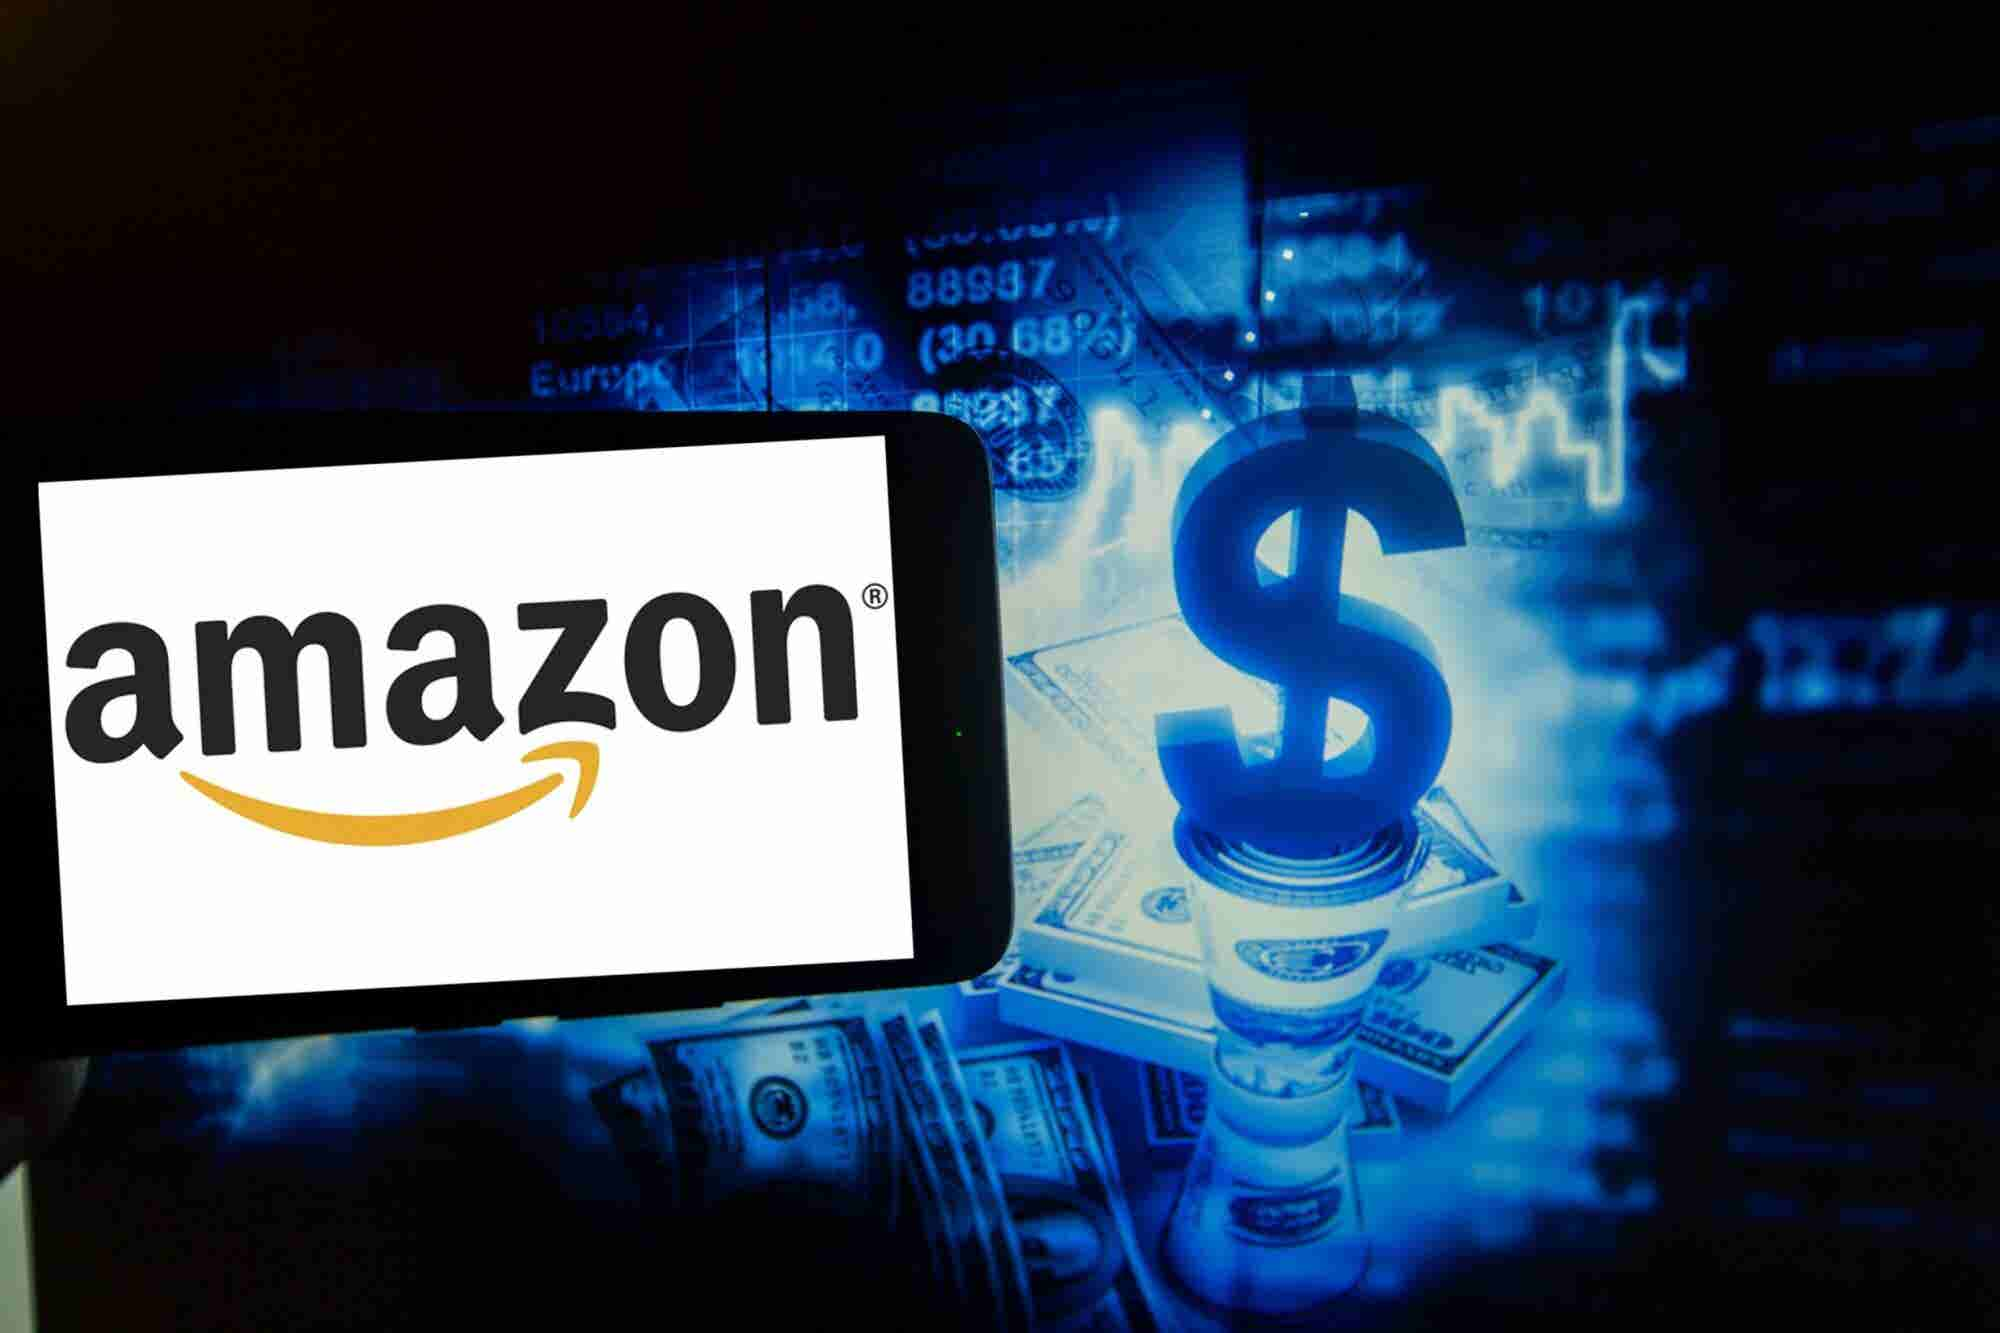 Advertising Is Growing Amazon's Business, So Let Amazon Help Grow Yours Too